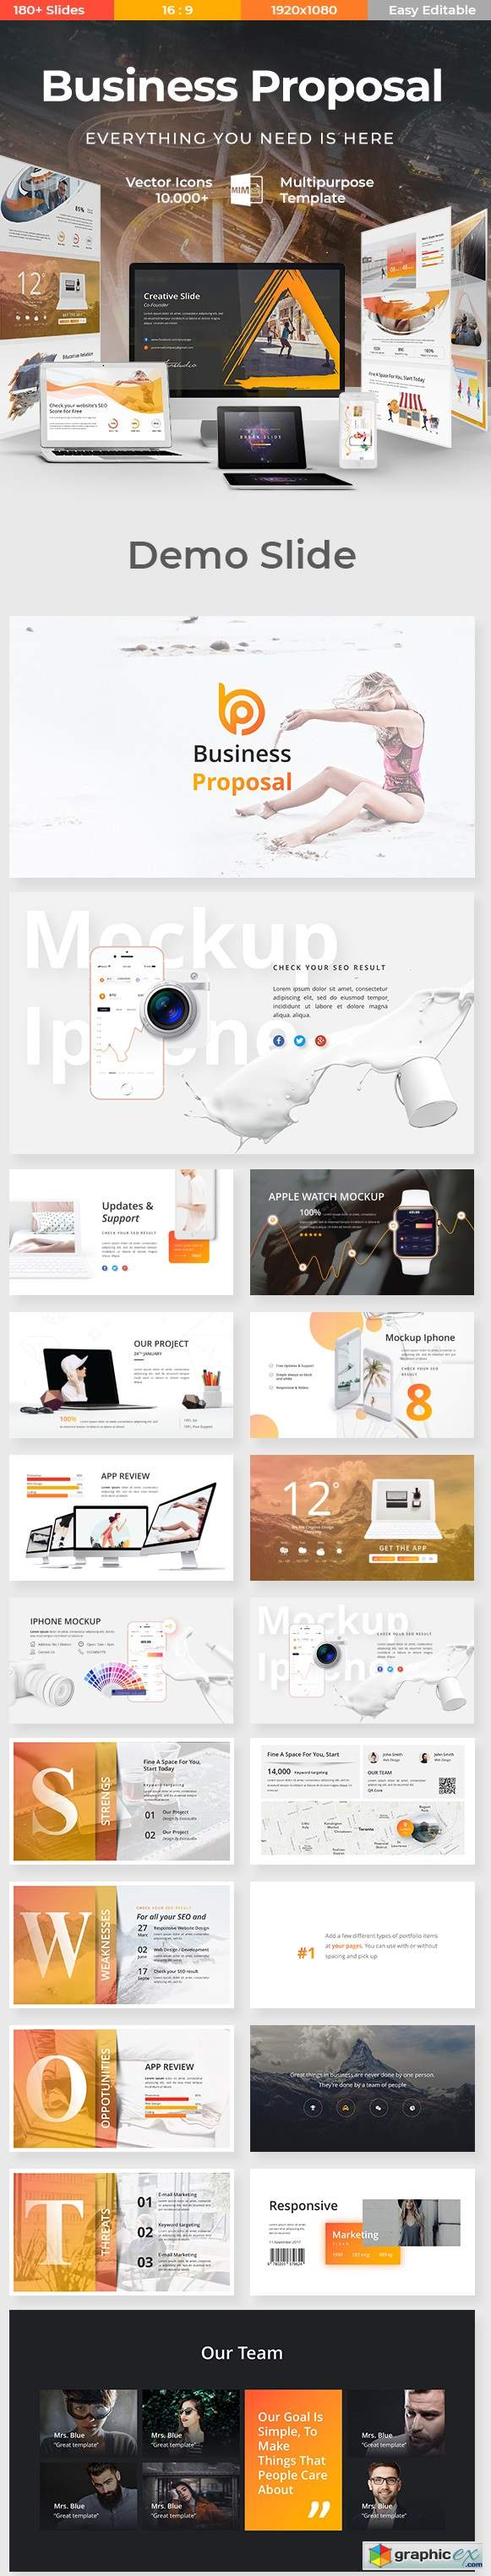 Business proposal powerpoint template 22604356 free download business proposal powerpoint template 22604356 wajeb Images